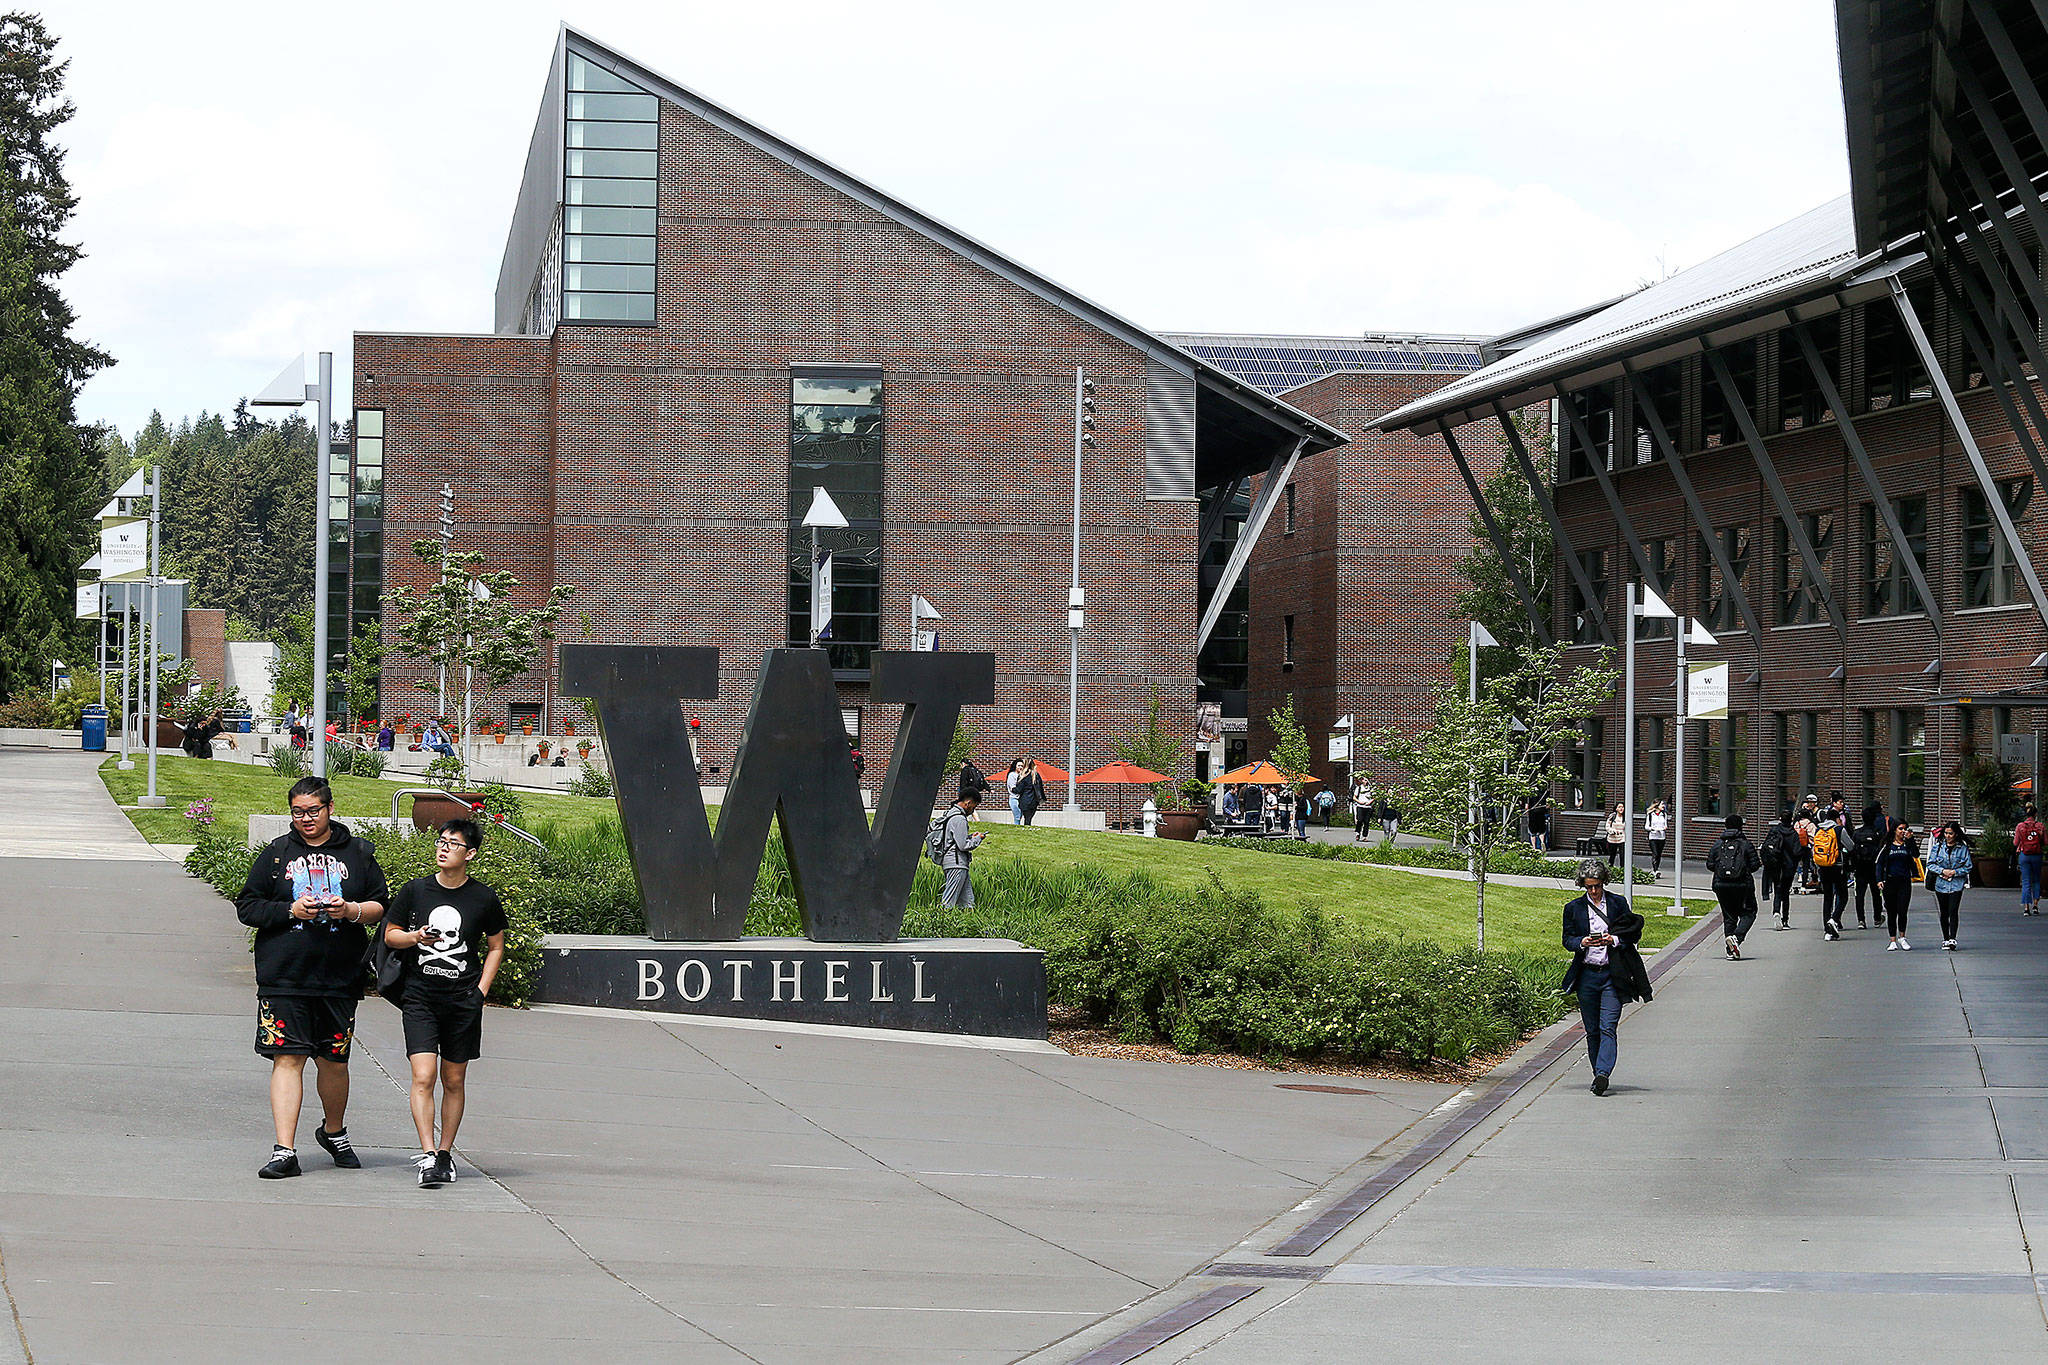 Students walk to classes at the UW Bothell campus on May 9 in Everett. (Andy Bronson / Herald file)